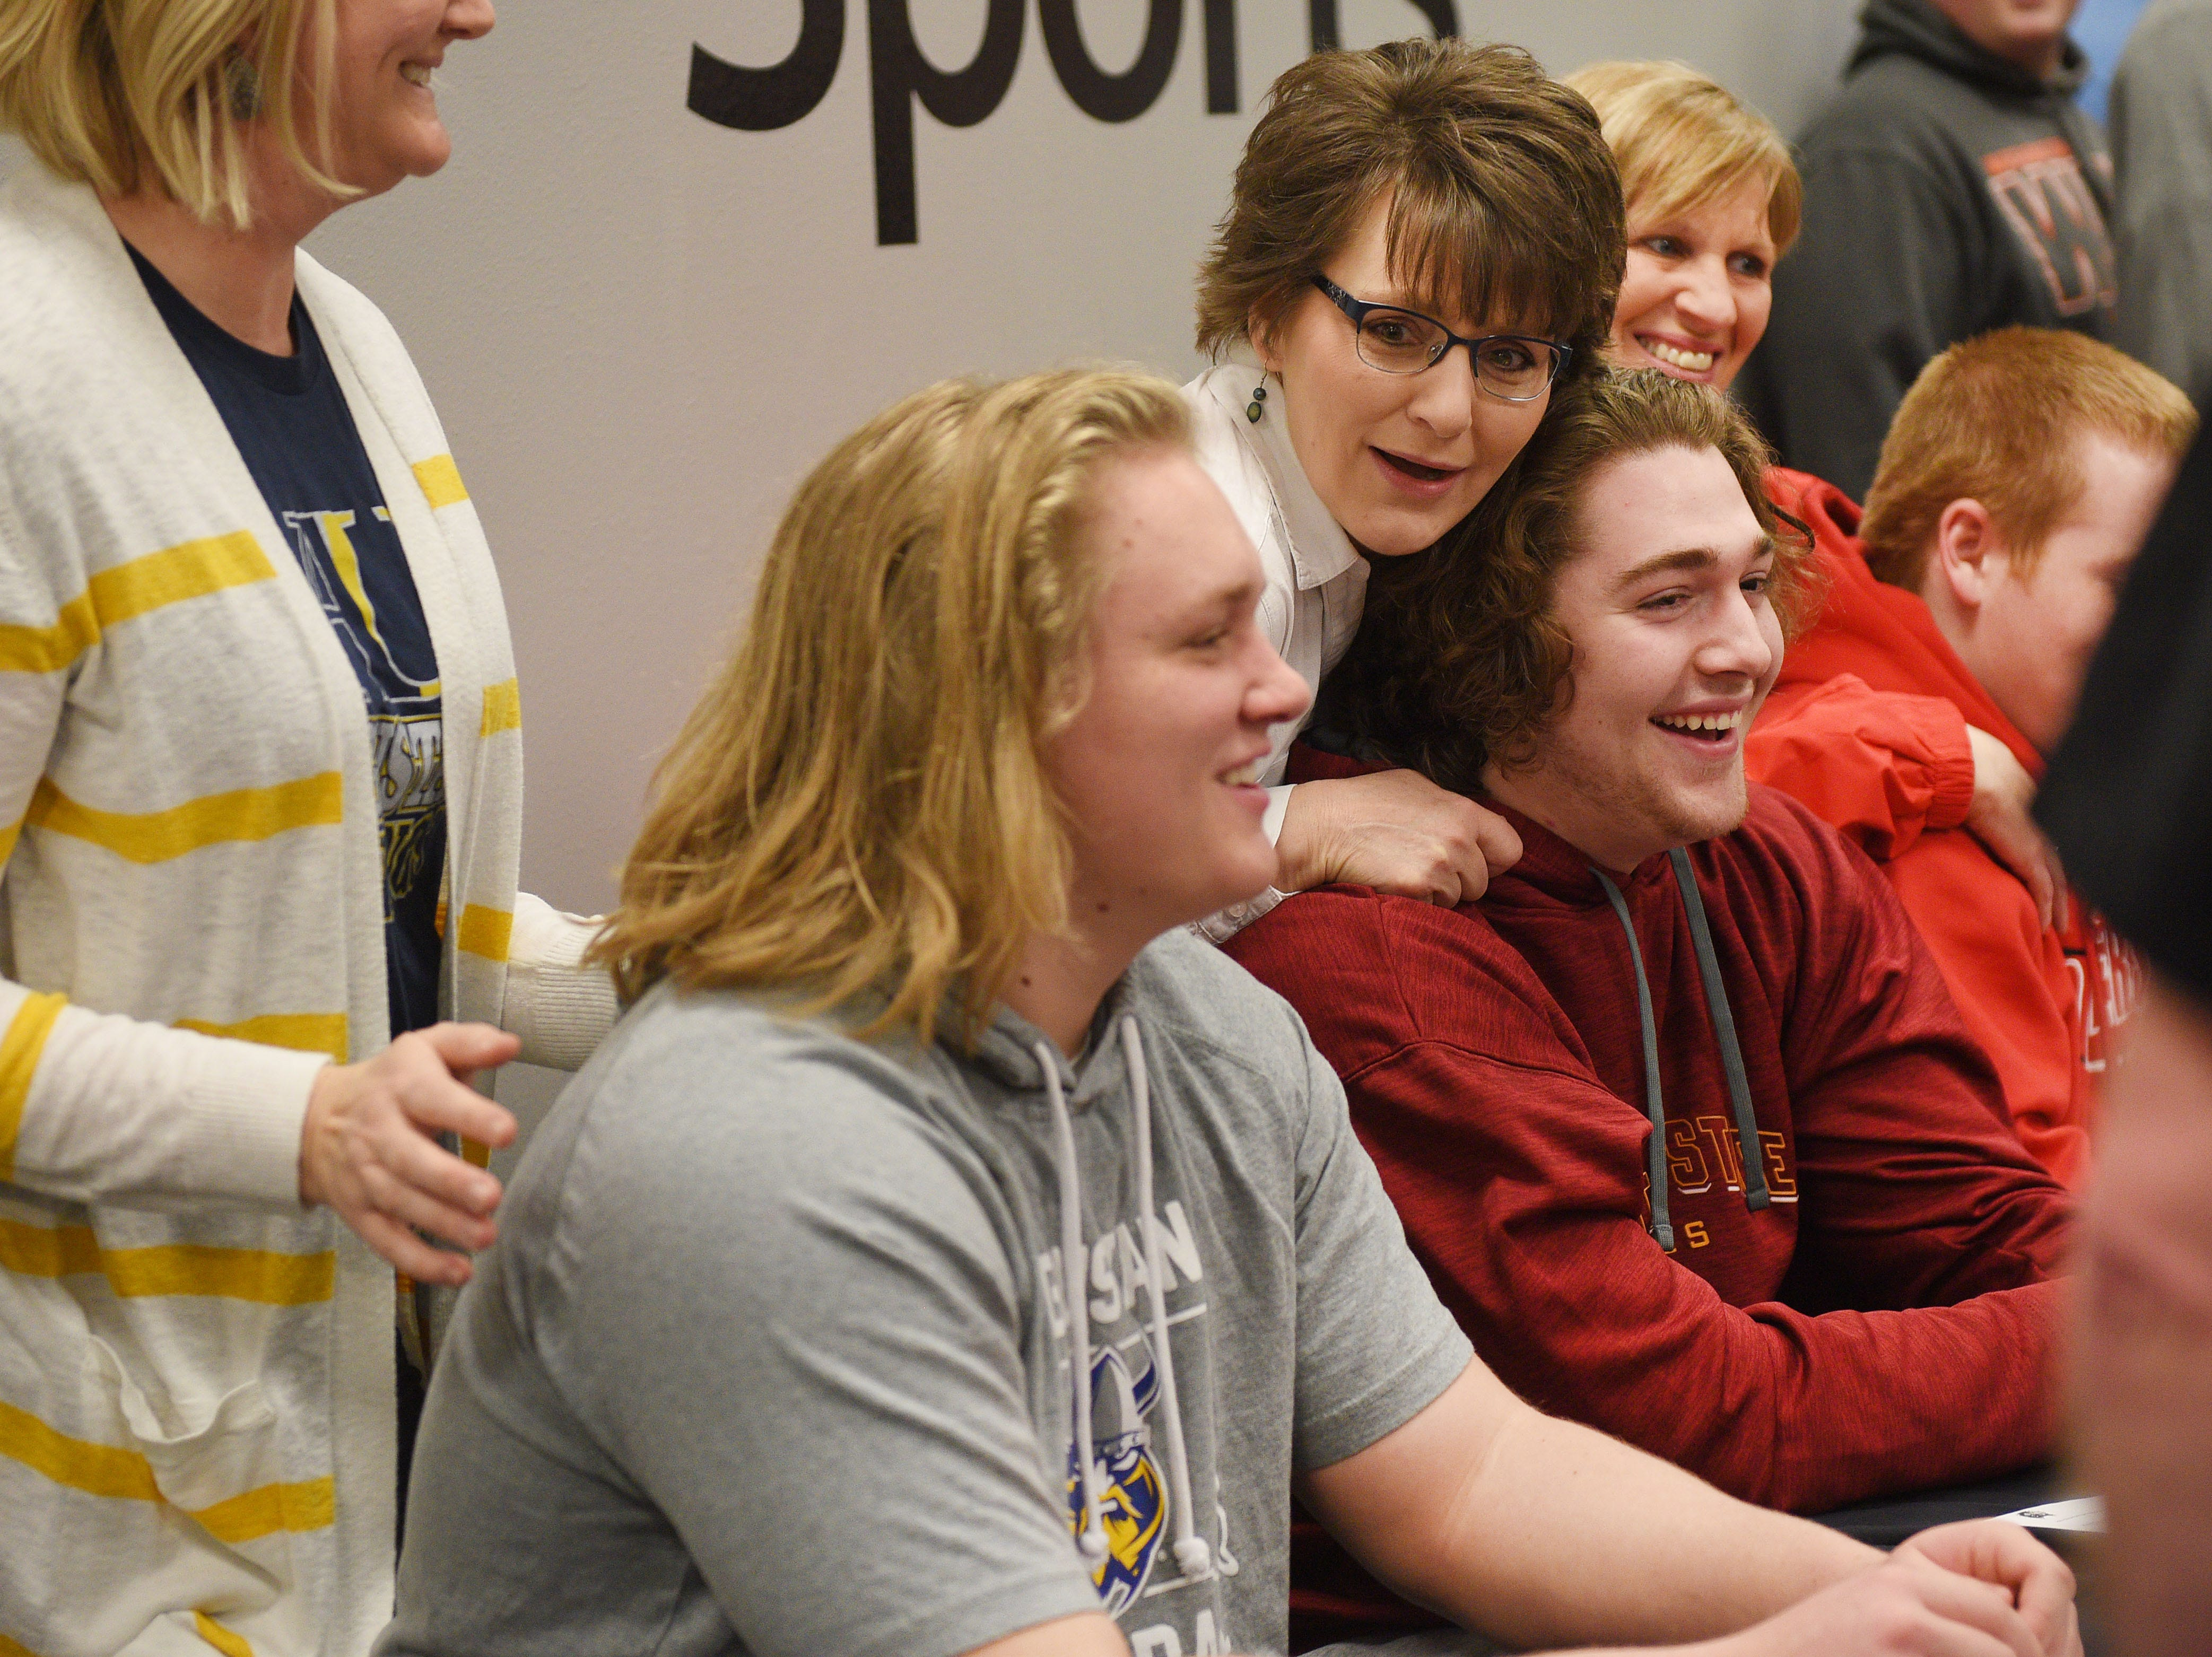 Deb Durland, center, stands behind her son Adam Durland for a photo on signing day for Washington High School Wednesday, Feb. 6, at Avera Sports Institute in Sioux Falls. Durland singed a National Letter of Intent to play football at Northern State University.